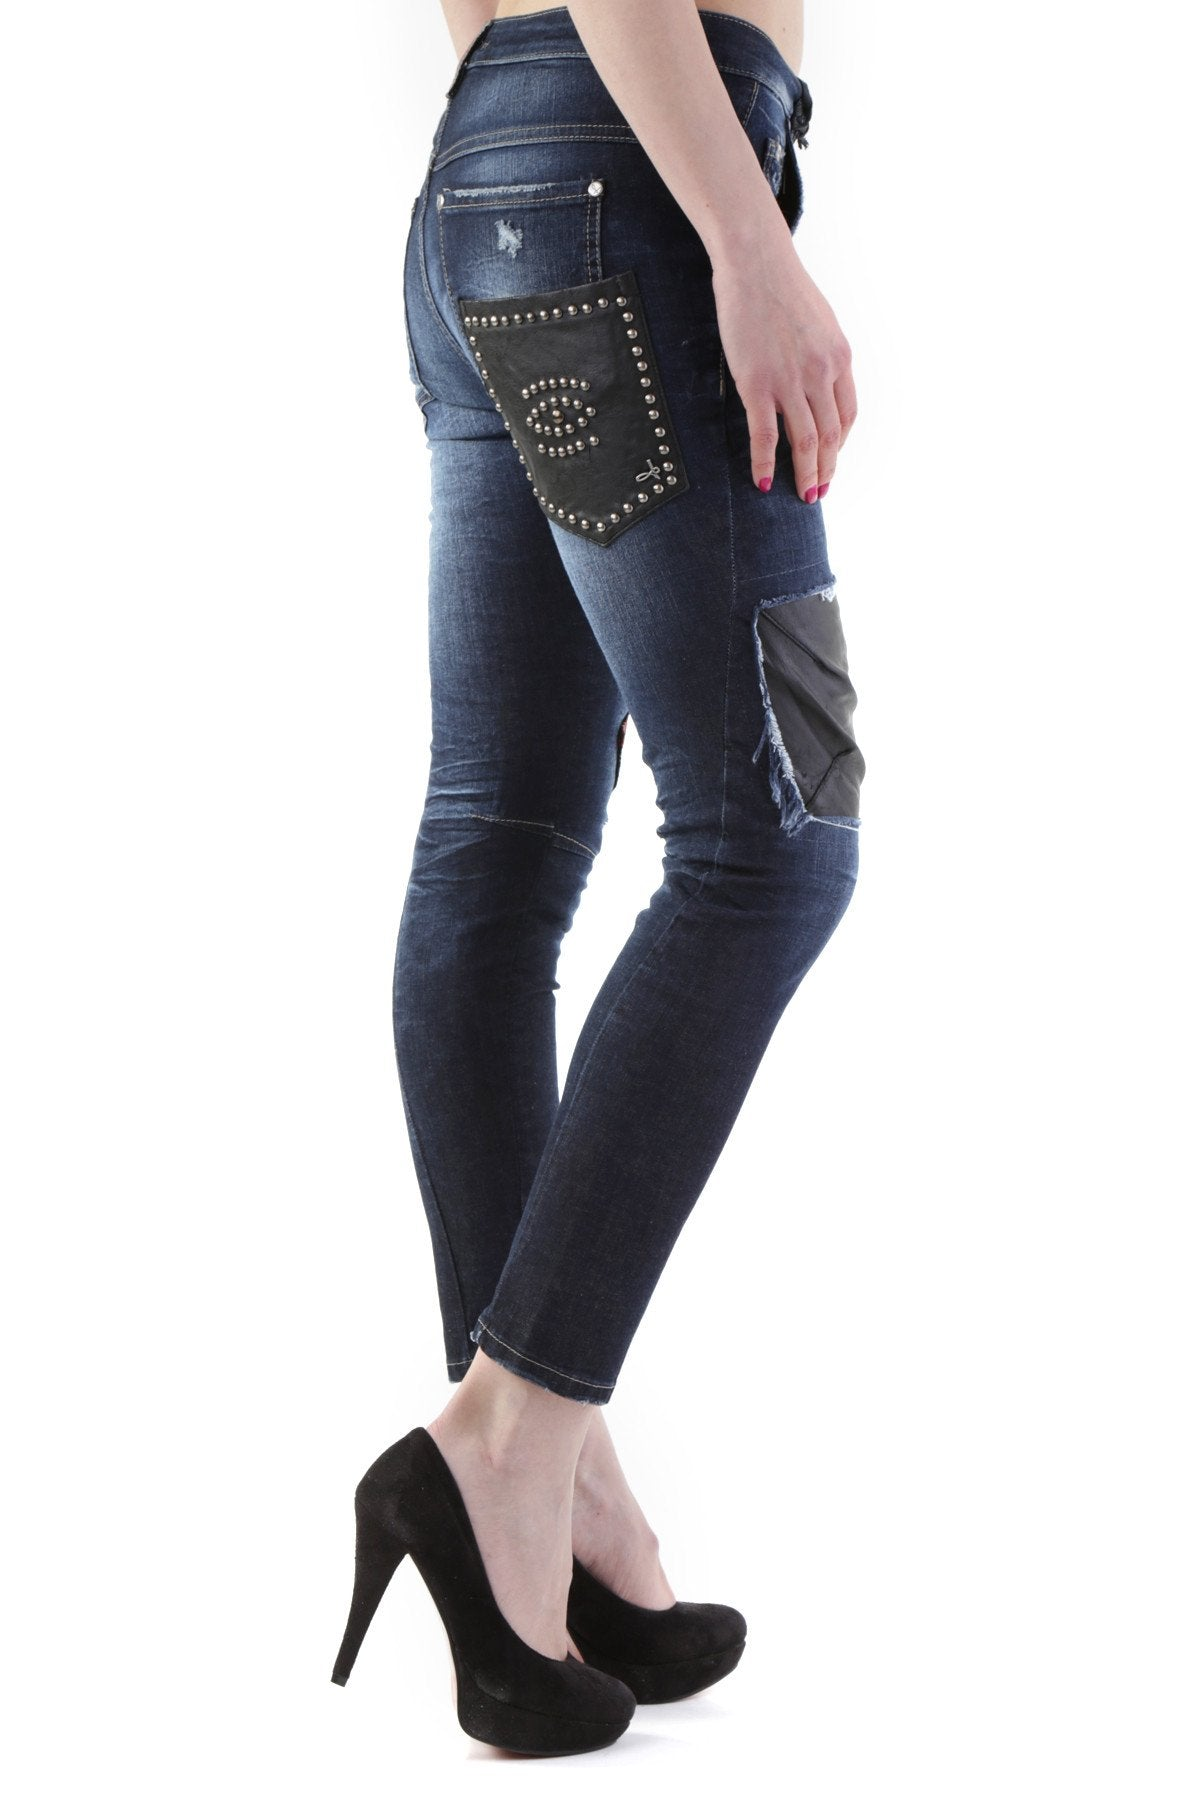 Sexy Woman Femme Jeans